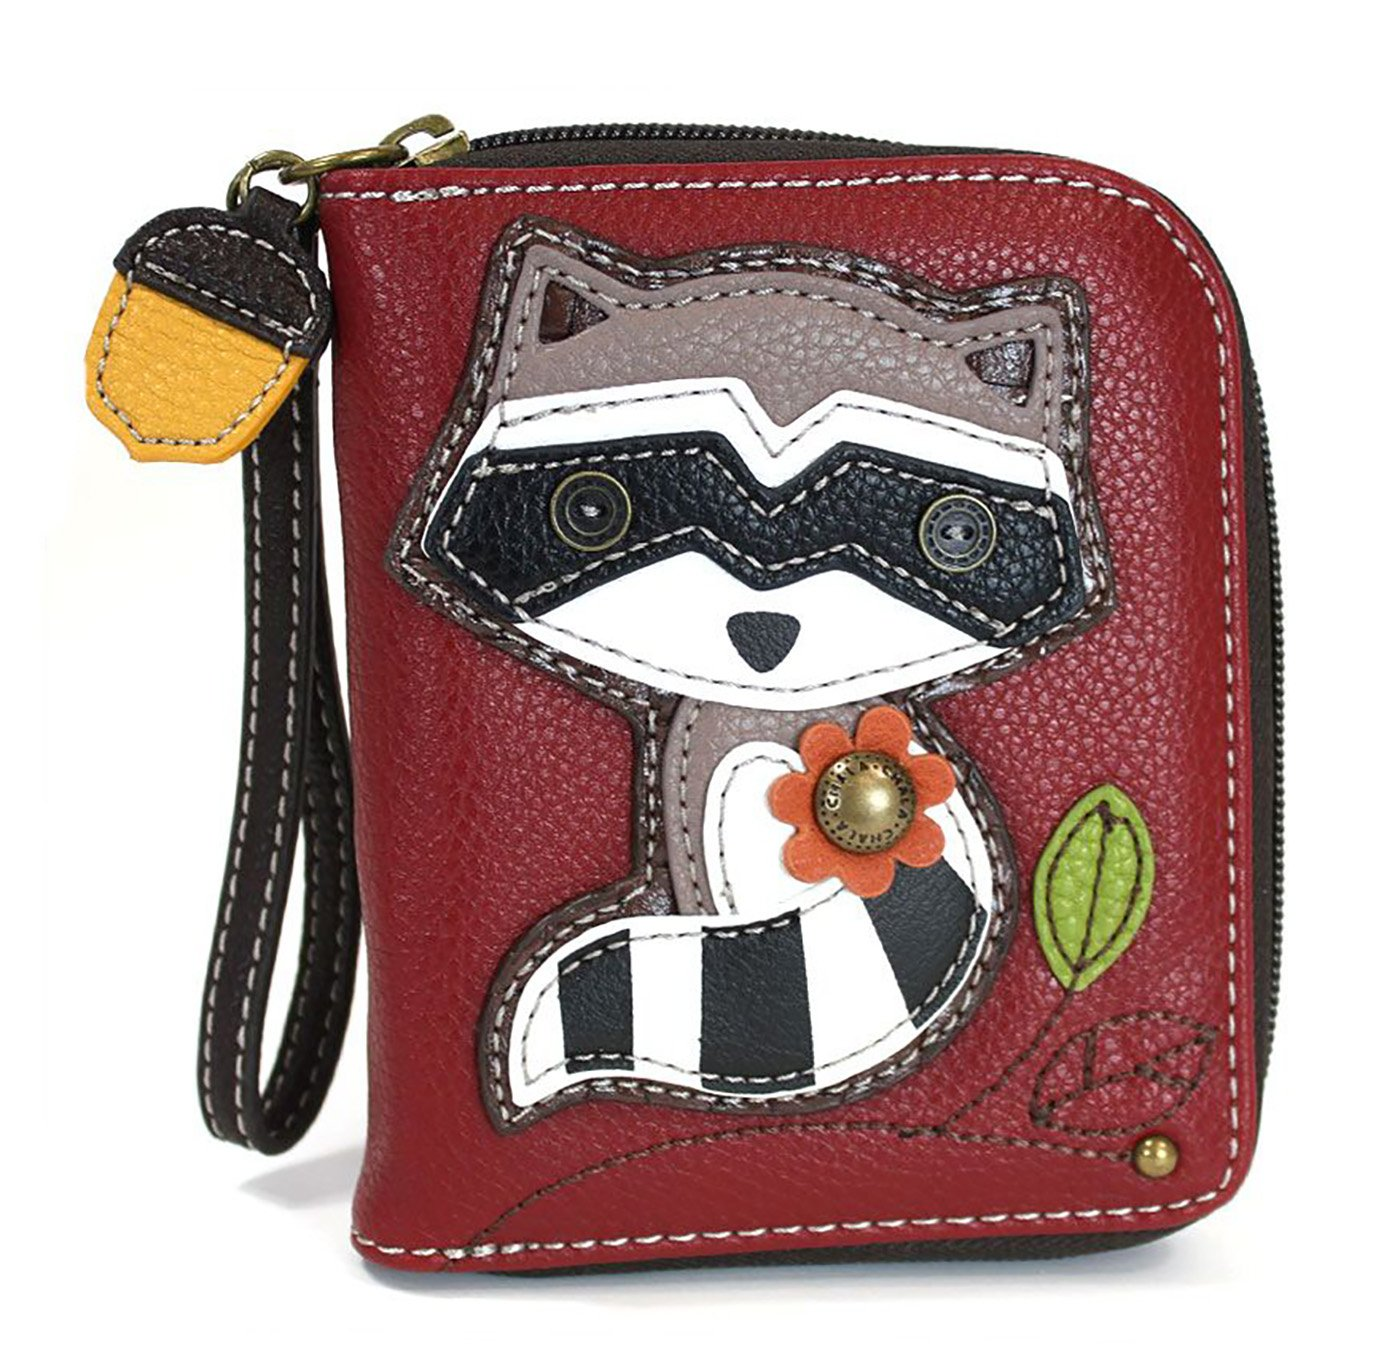 Chala Zip Around Wallet, Wristlet, 8 Credit Card Slots, Sturdy Pu Leather - Raccoon - Burgundy